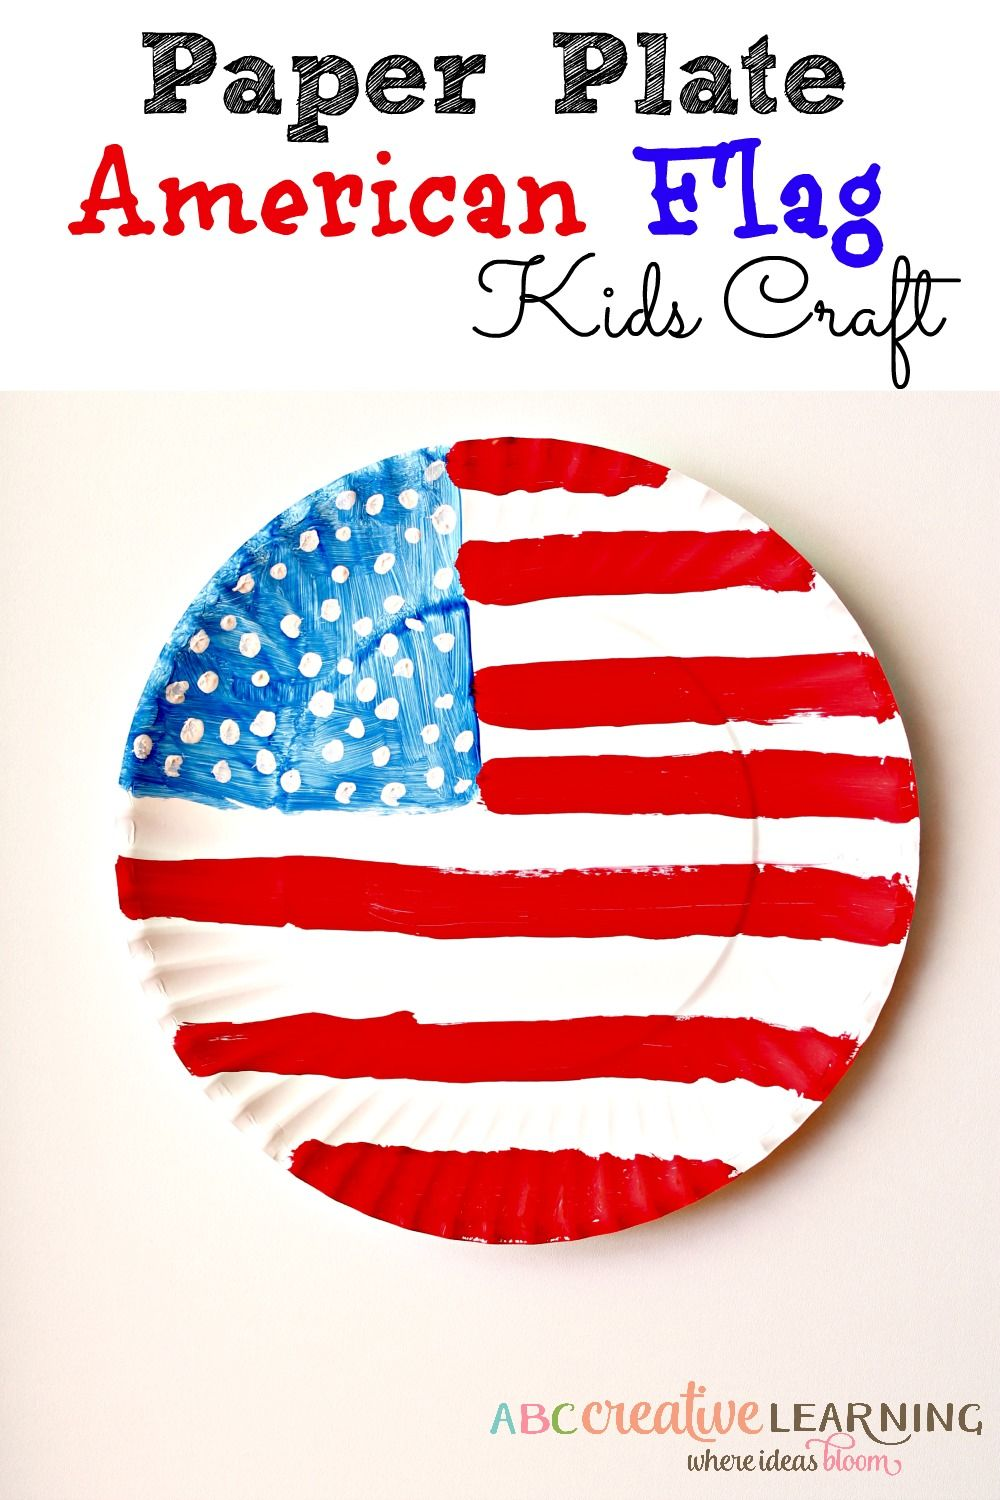 302a4e008be Keep the kids busy and learning about the 4th of July with this Paper Plate American  Flag! Perfect for kids! - abccreativelearning.com